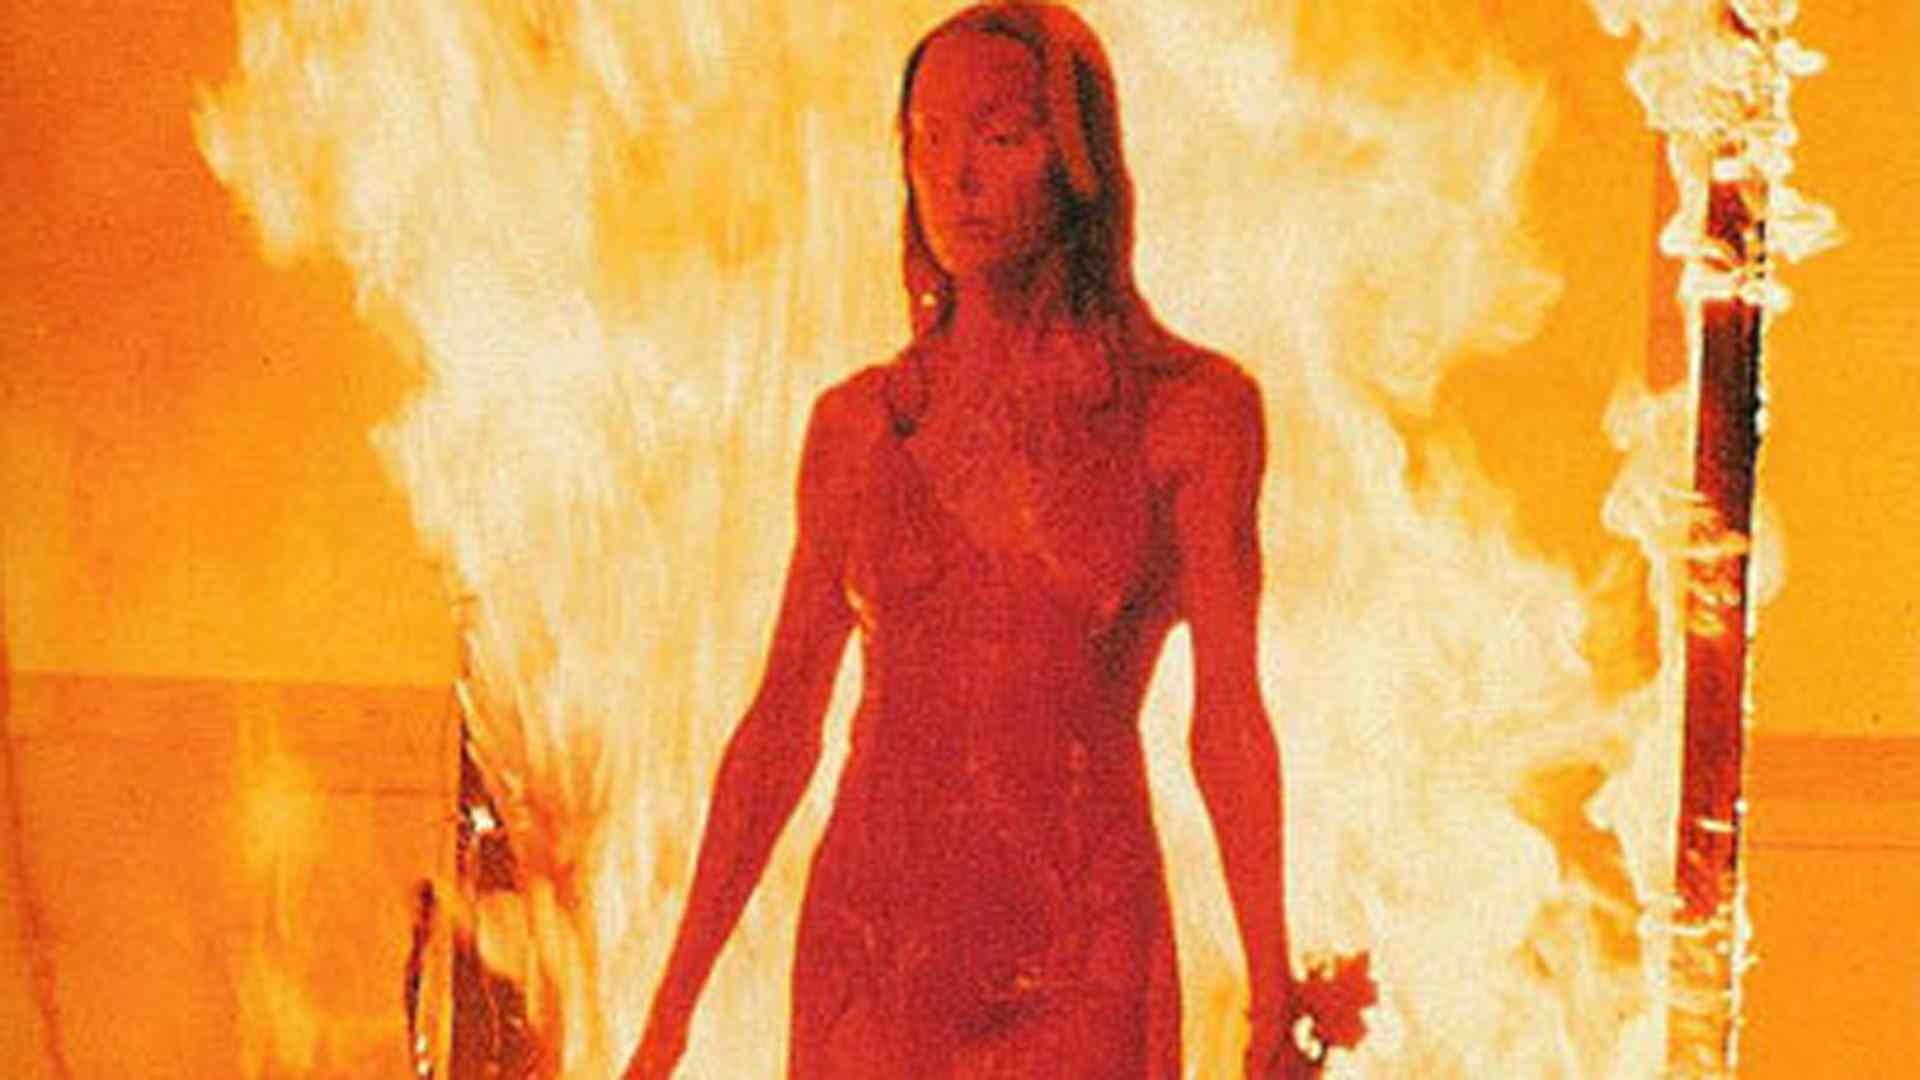 Sissy Spacek who plays Carrie in this hit Stephen King novel and Brian De Palma directed movie.